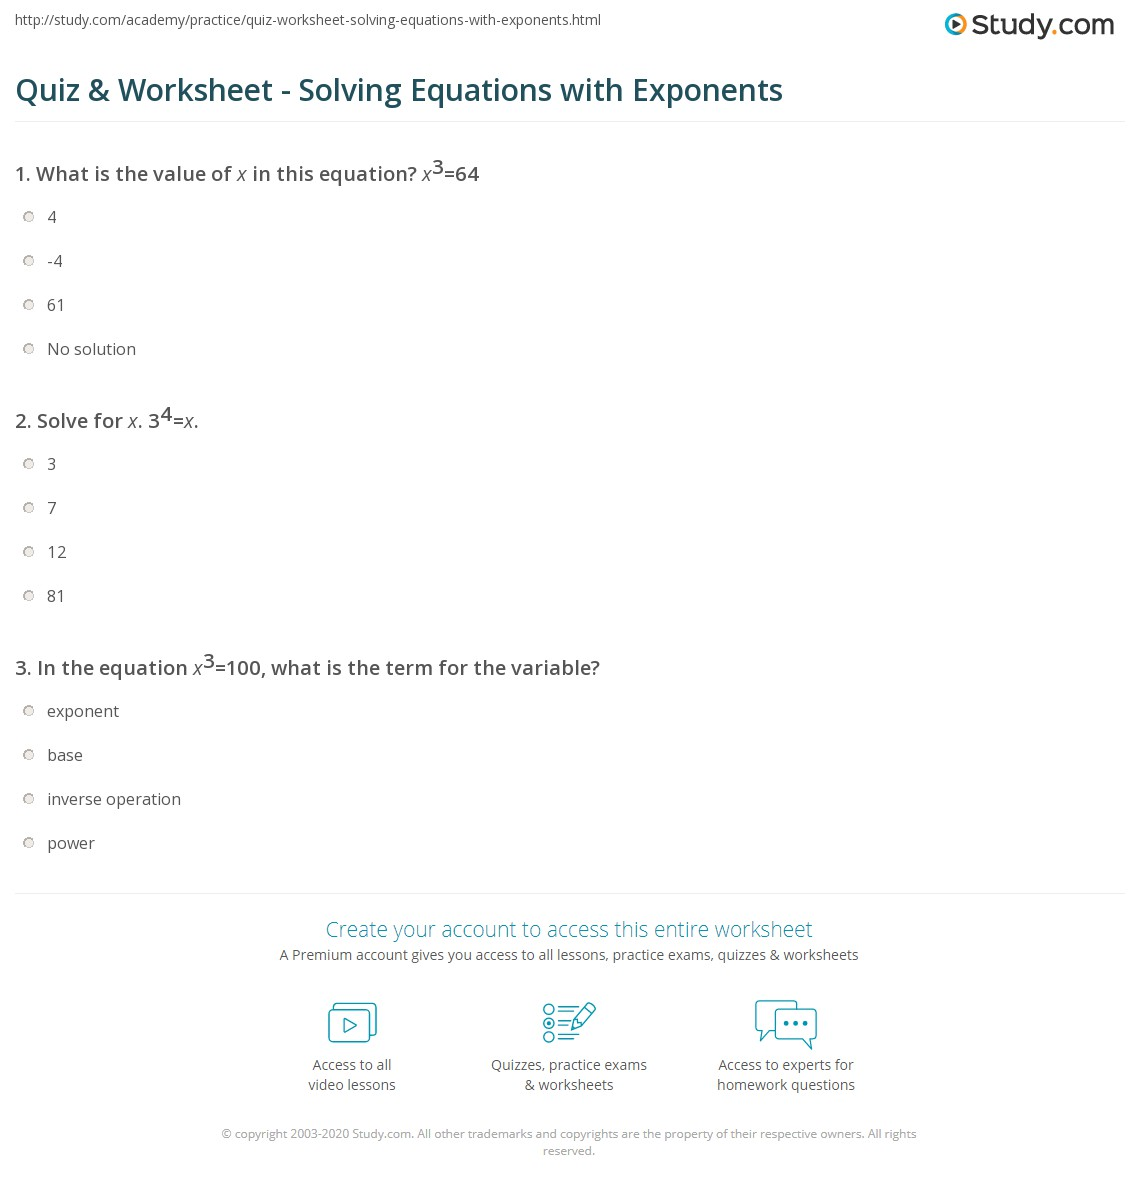 Quiz Worksheet Solving Equations With Exponents Study Com